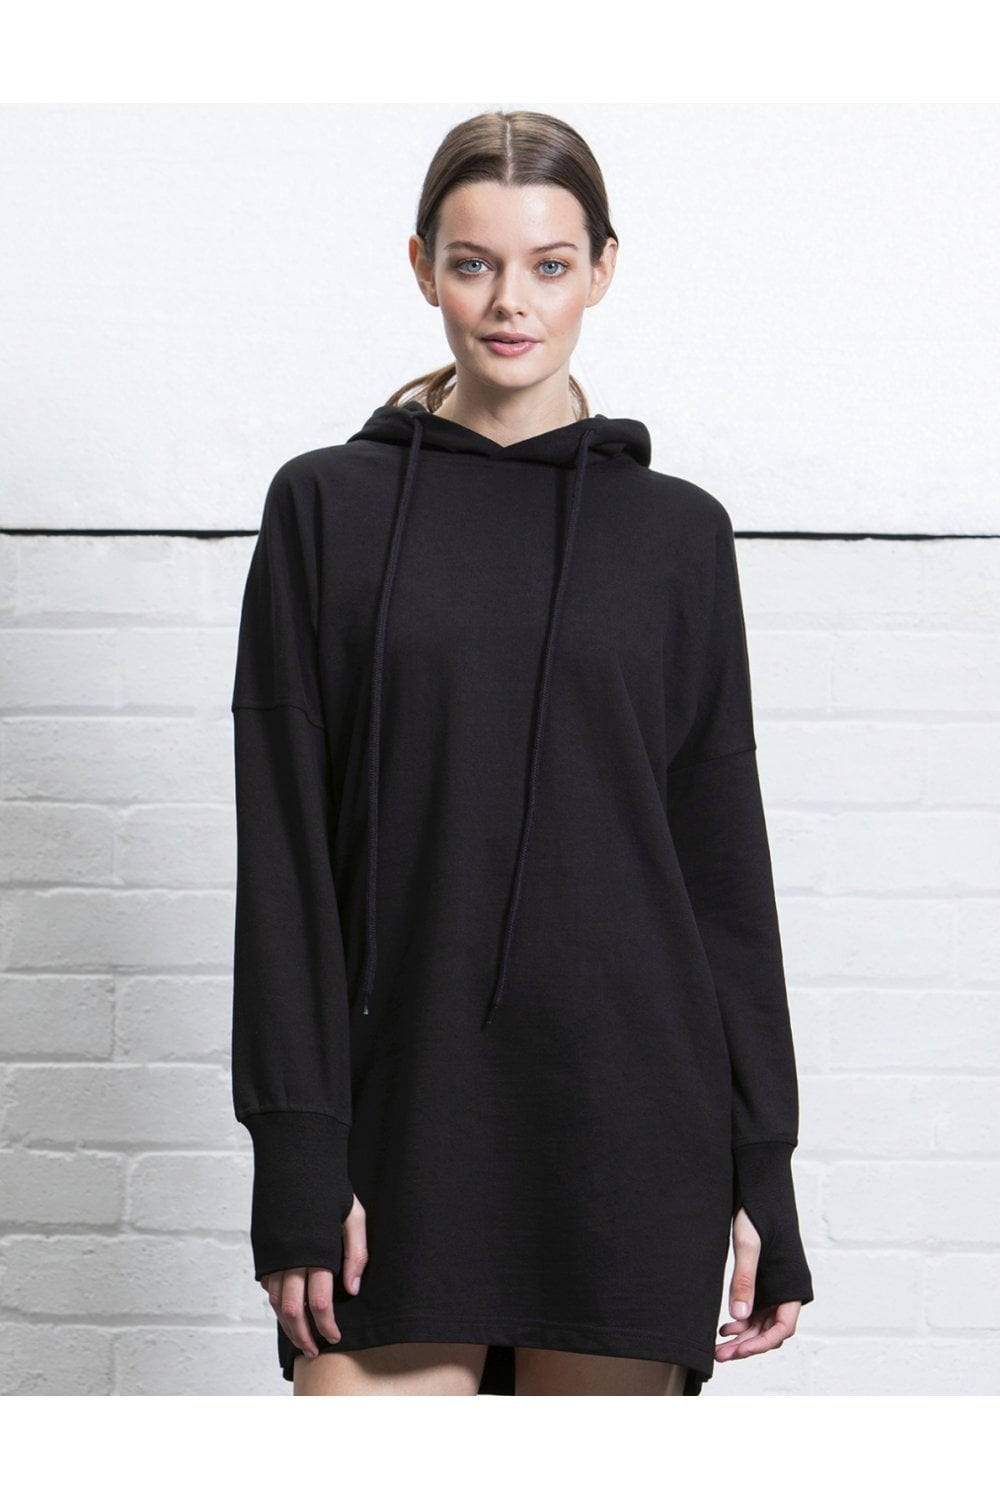 womens hoodie dress p251 4135 image